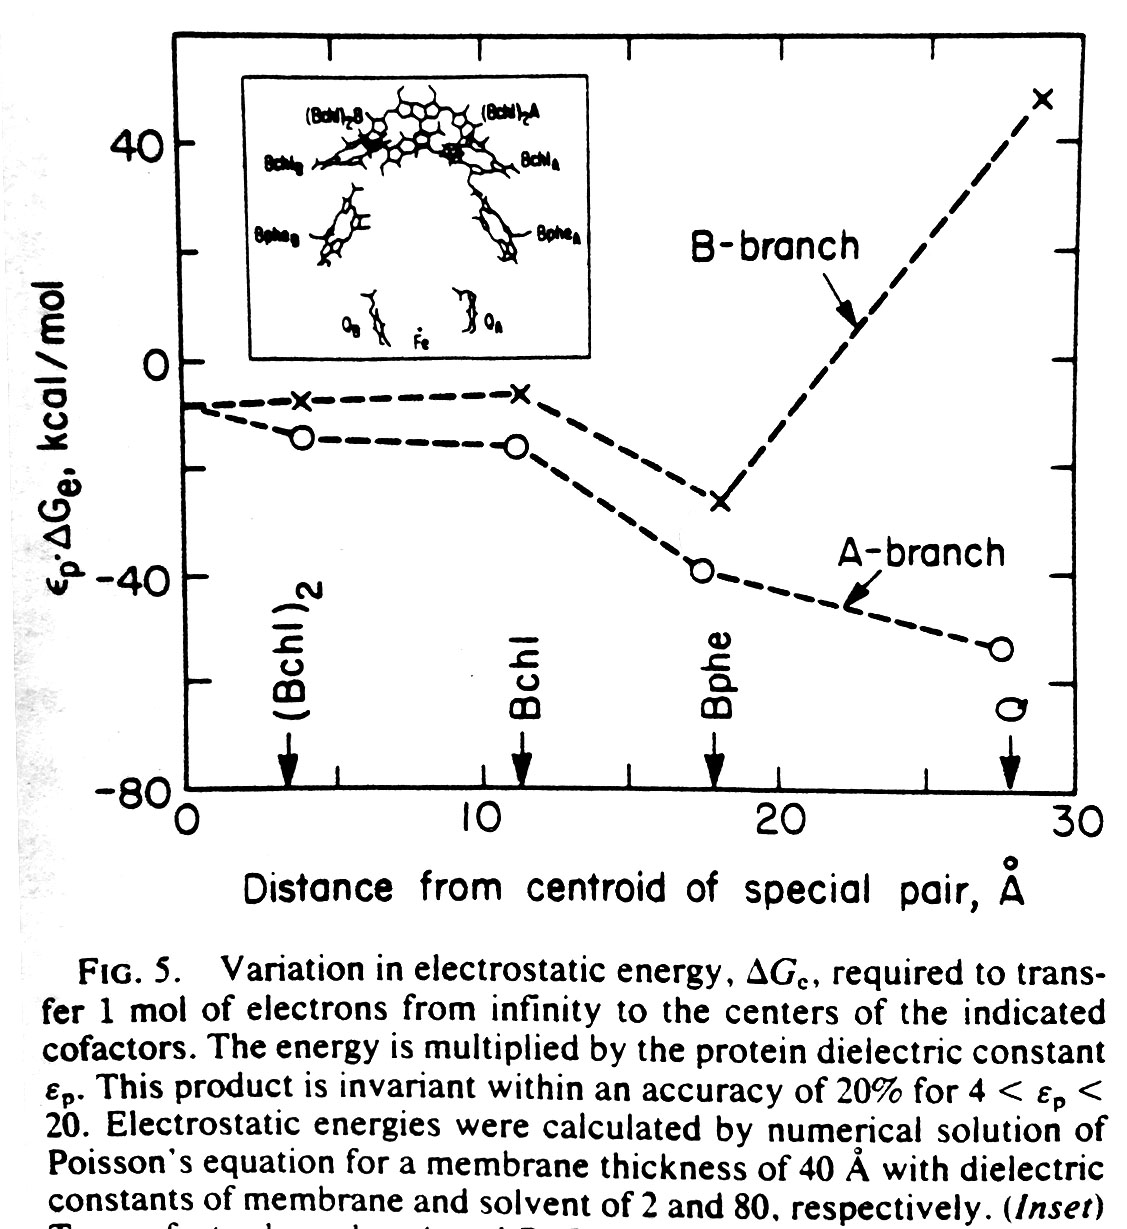 1987 calculation of the electrostatic properties along the two nearly-equivalent cofactor branches in the photosynthetic reaction center by solving the Poisson-Boltzmann electrostatics equations in a non-uniform diectric using successive overrelaxation.